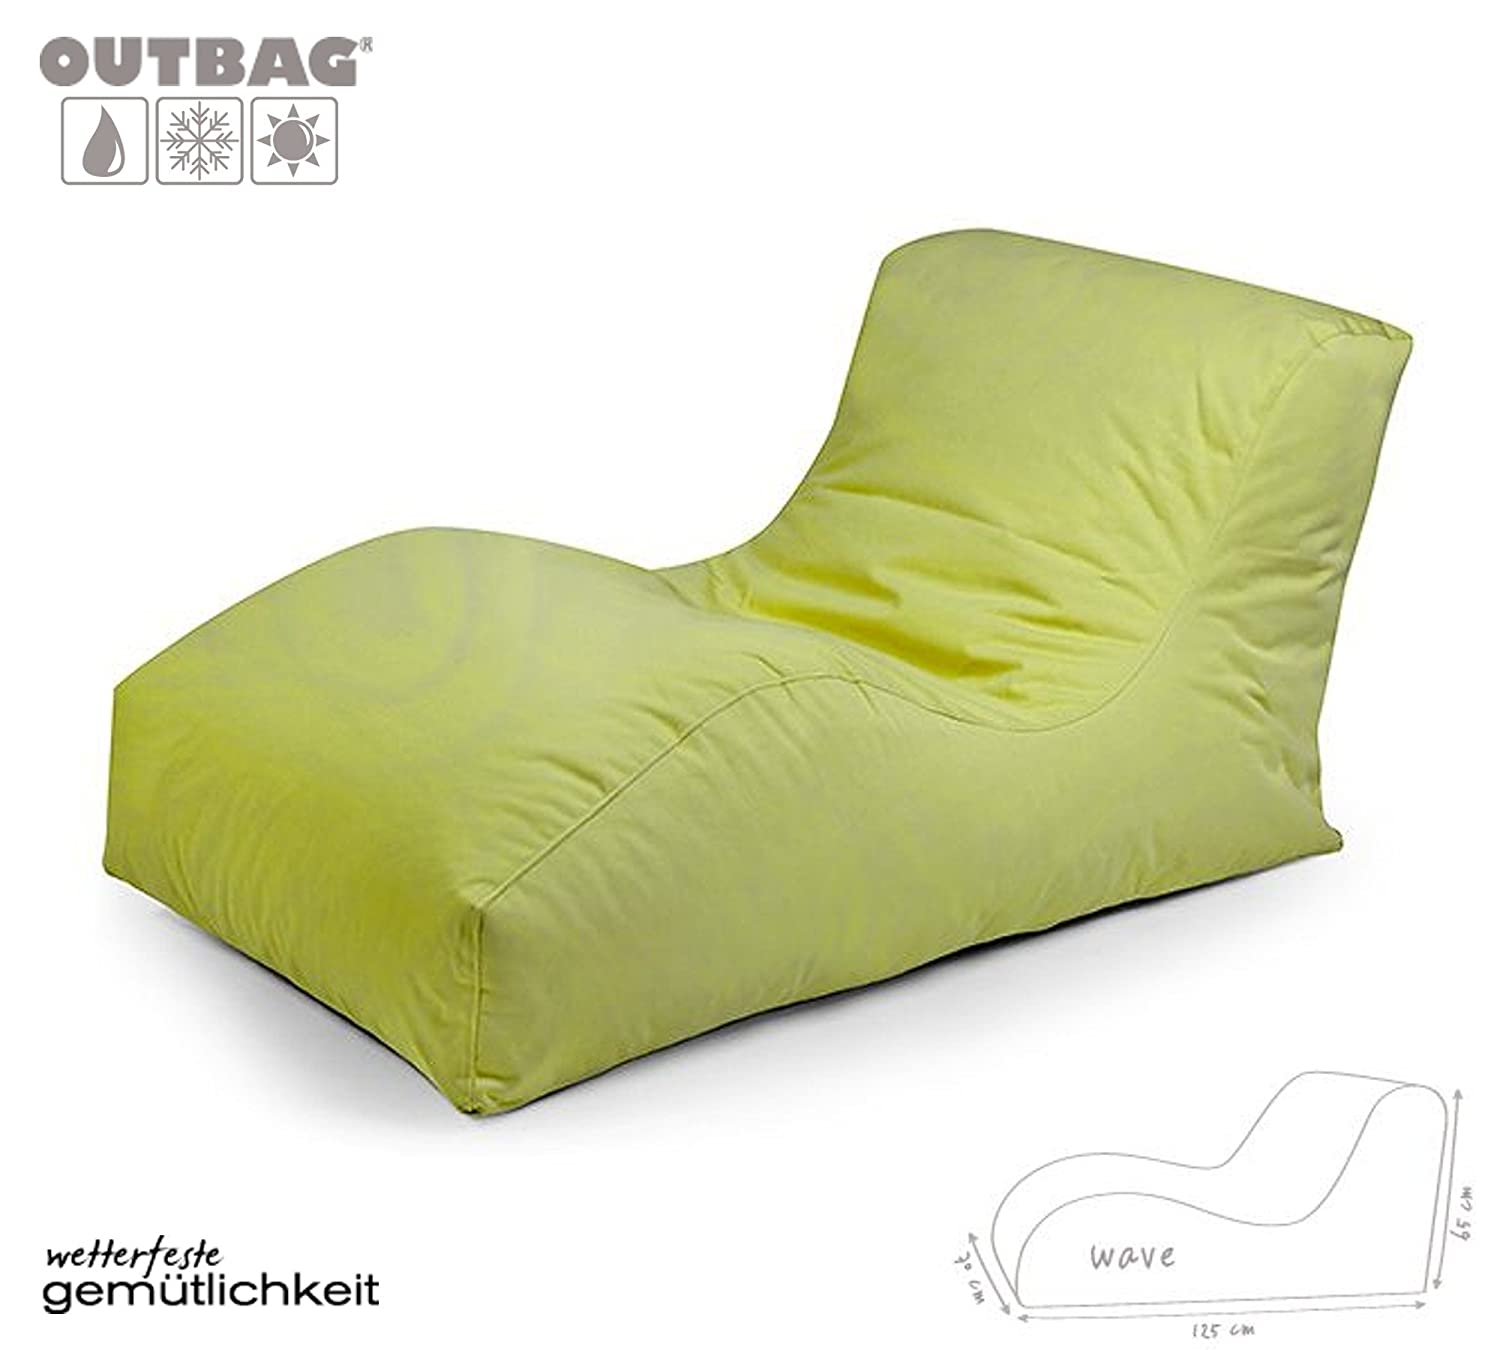 Sitzsack Outbag Wave Kollektion Plus in Limone